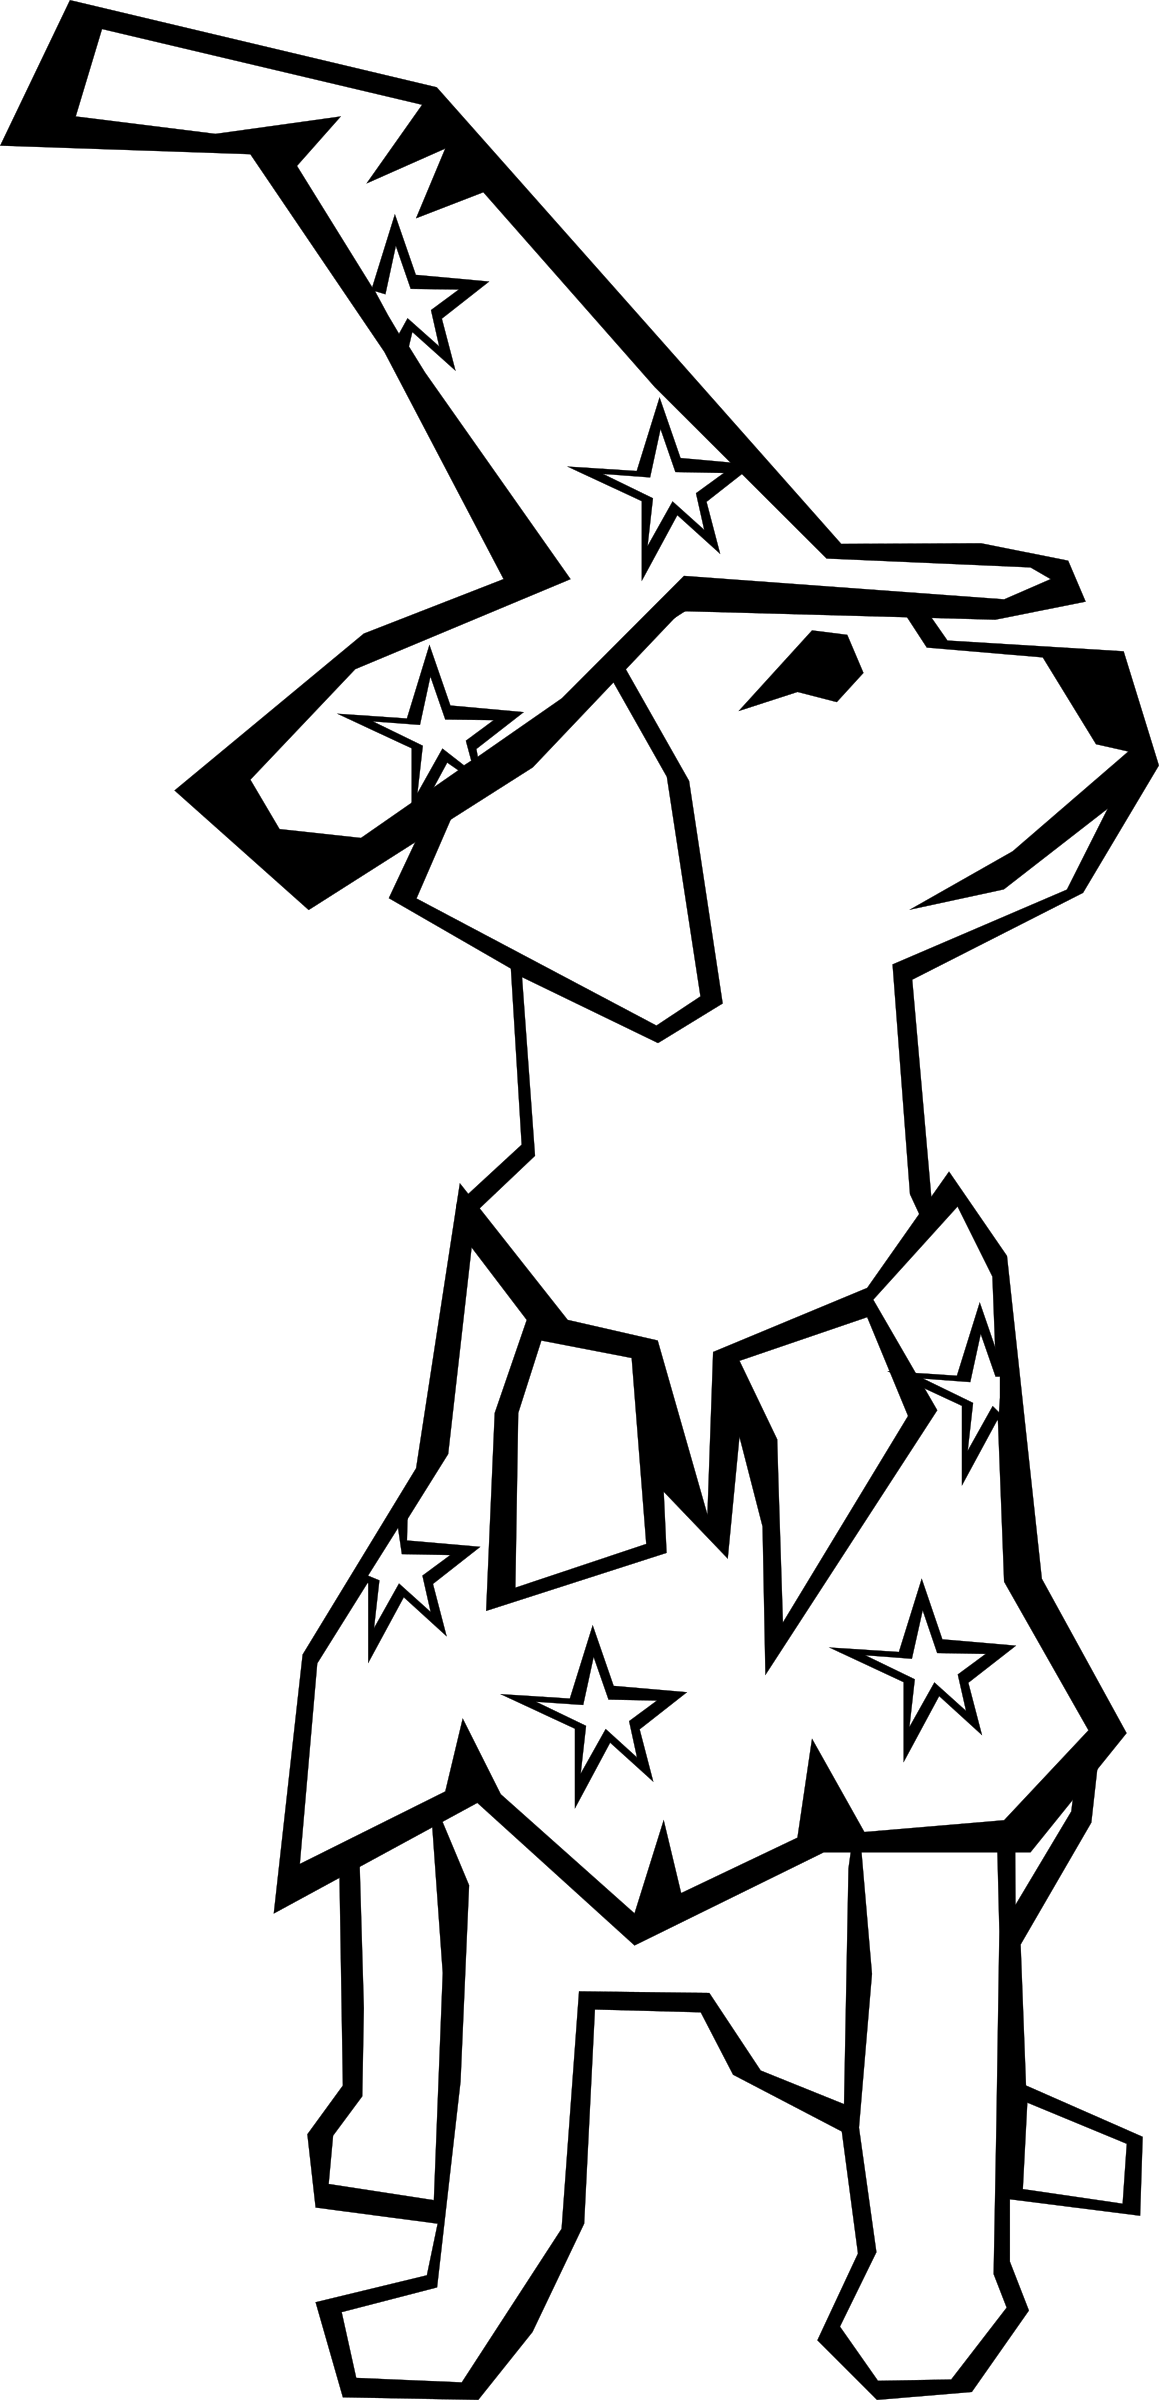 Dog (Simple Drawing) by Gerald_G